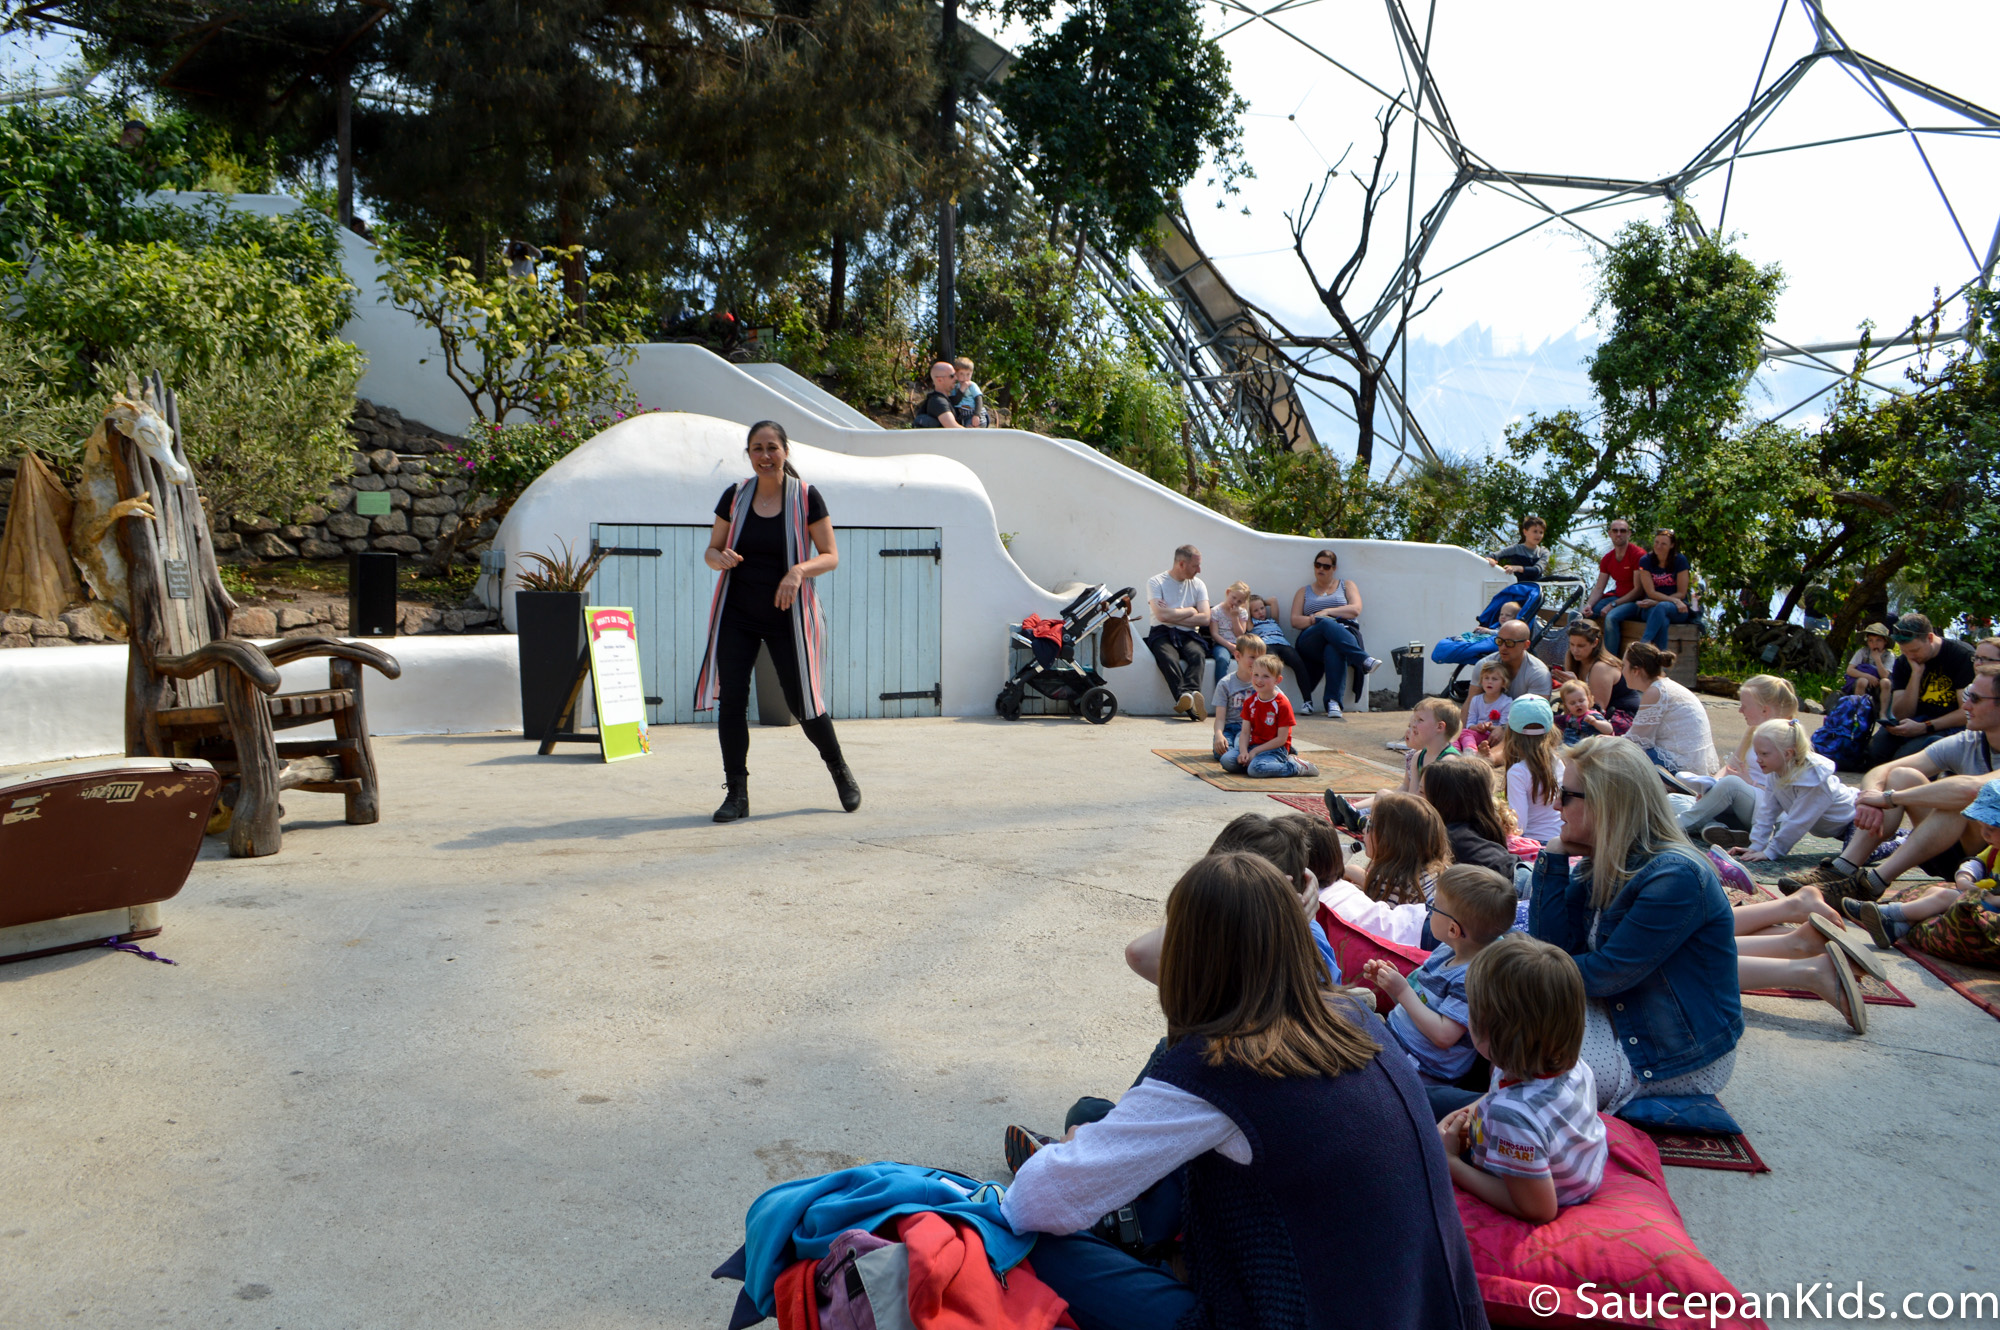 Saucepan Kids visit and review Eden Project Cornwall - The Mediterranean Biome Storytelling